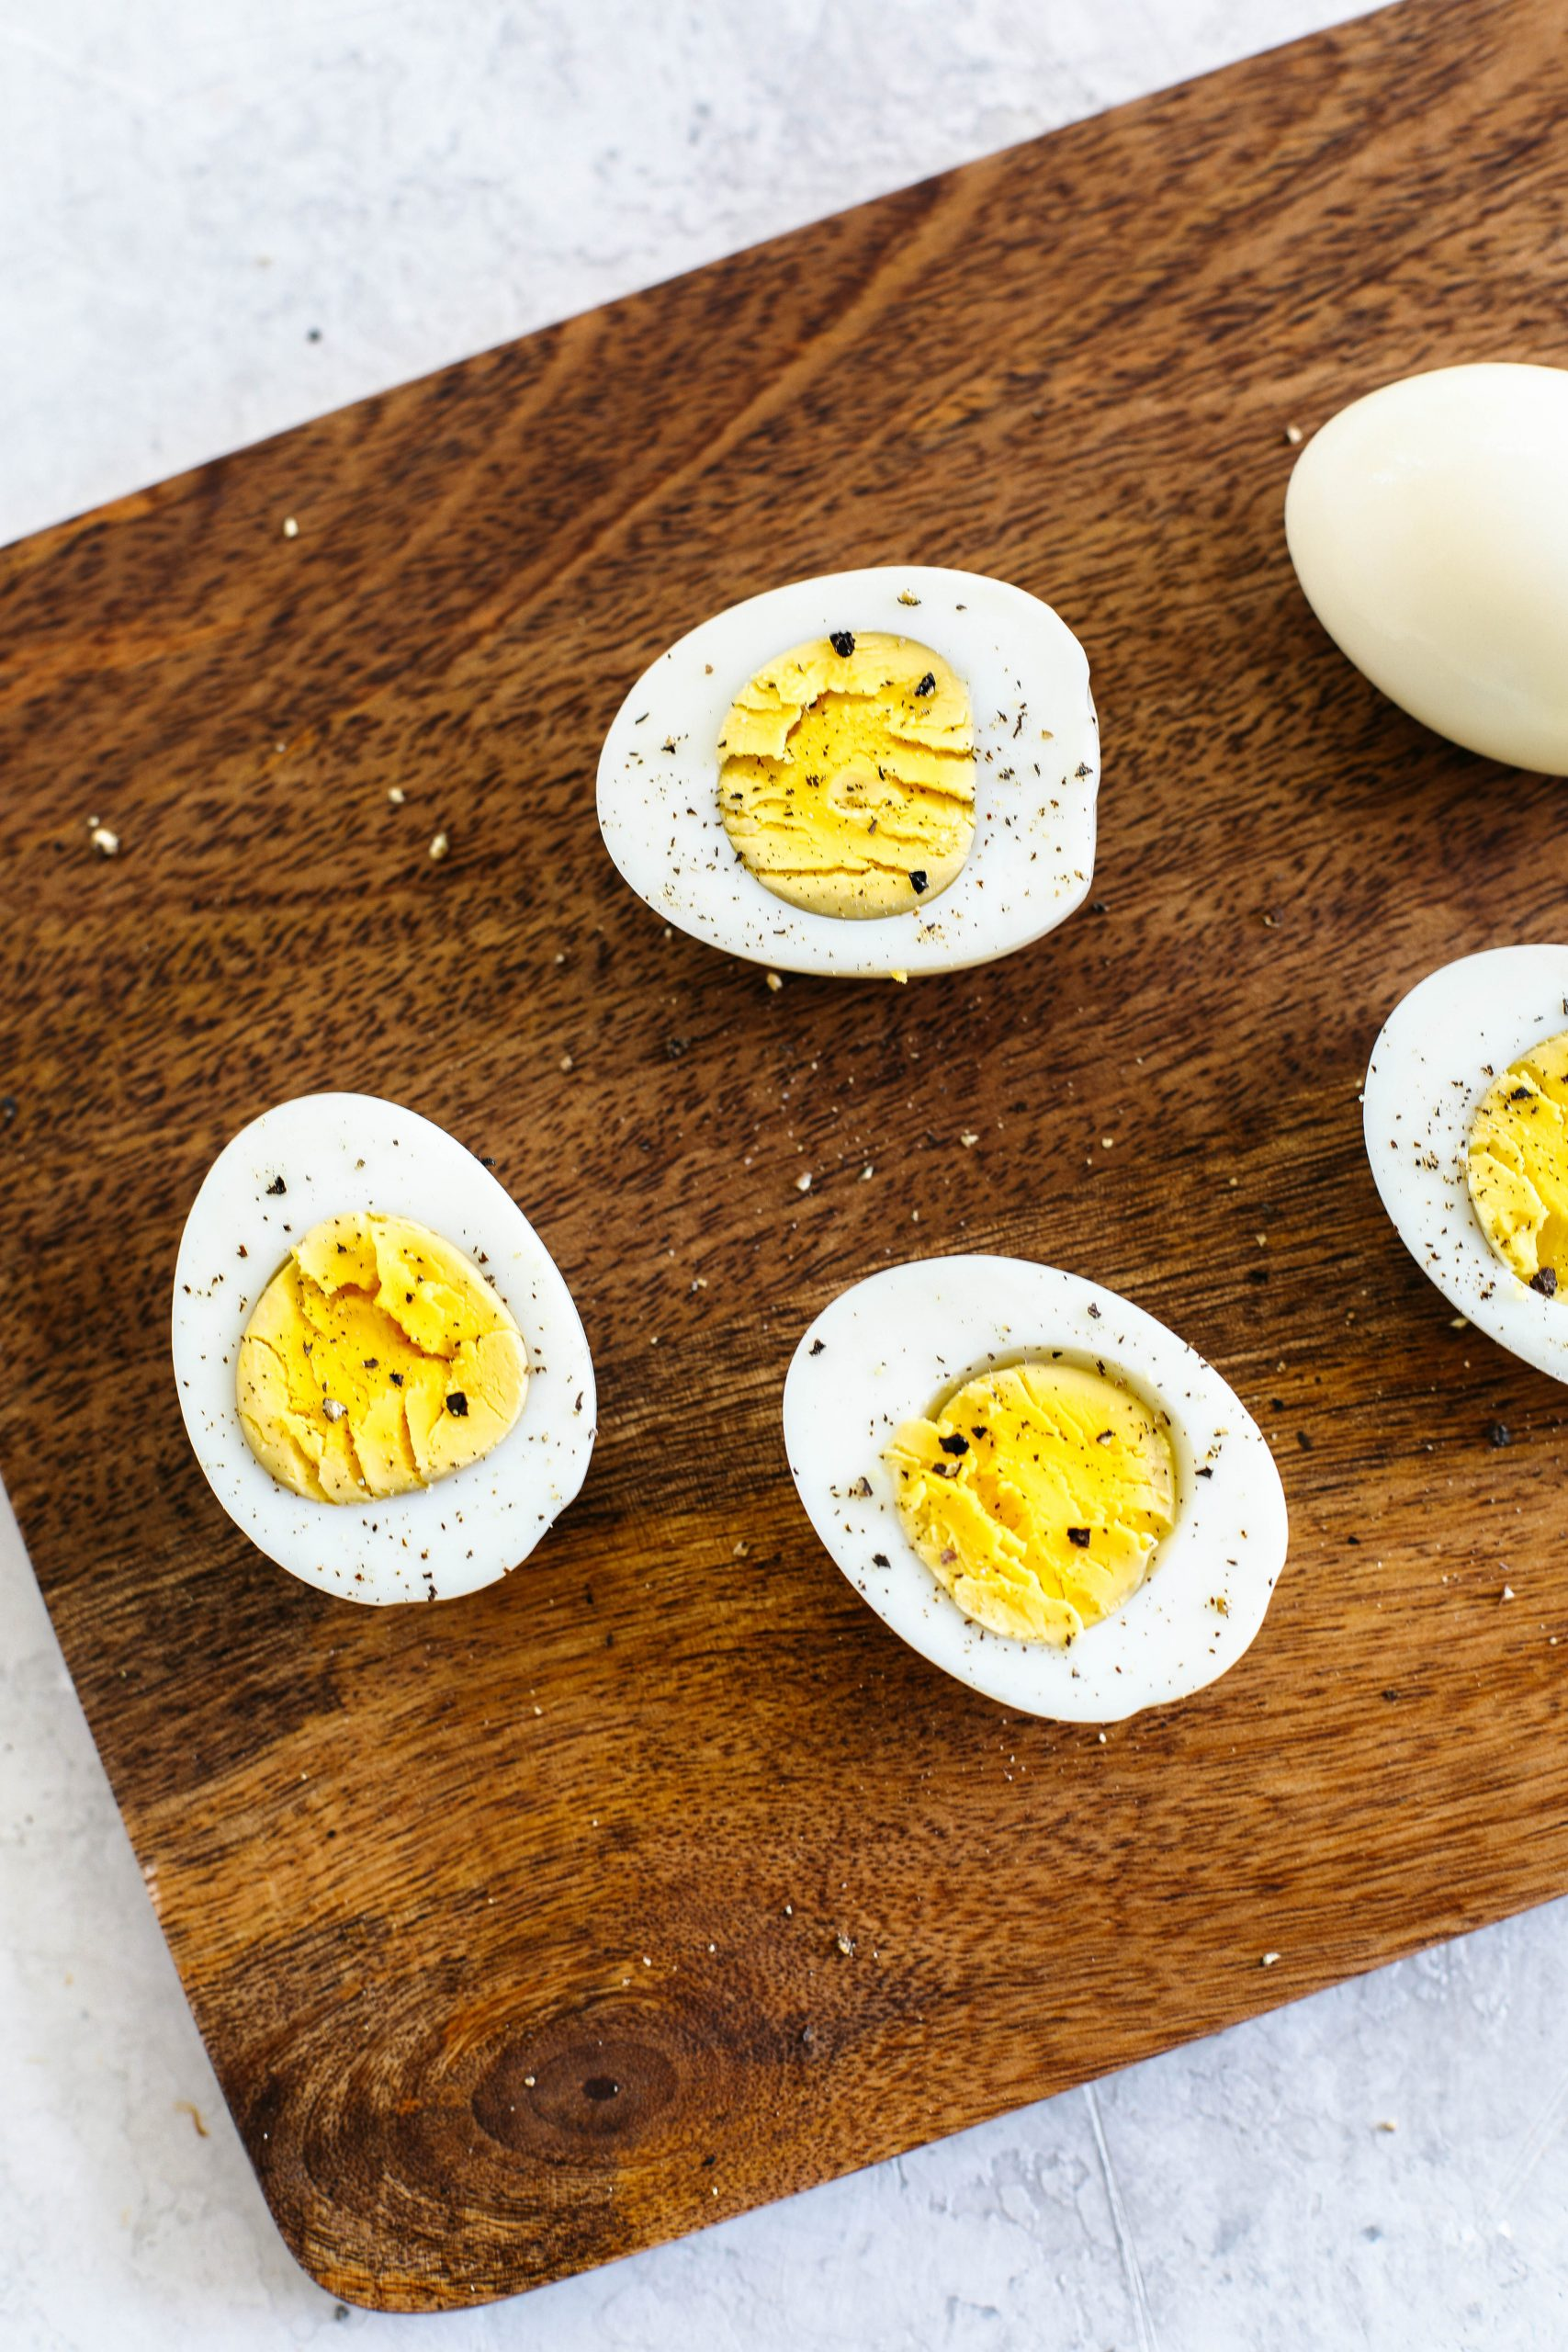 Perfectly cooked hard boiled eggs in the Instant Pot that are easy to peel and ready in just 15 minutes!  Hands down the easiest method and perfect for meal prep!